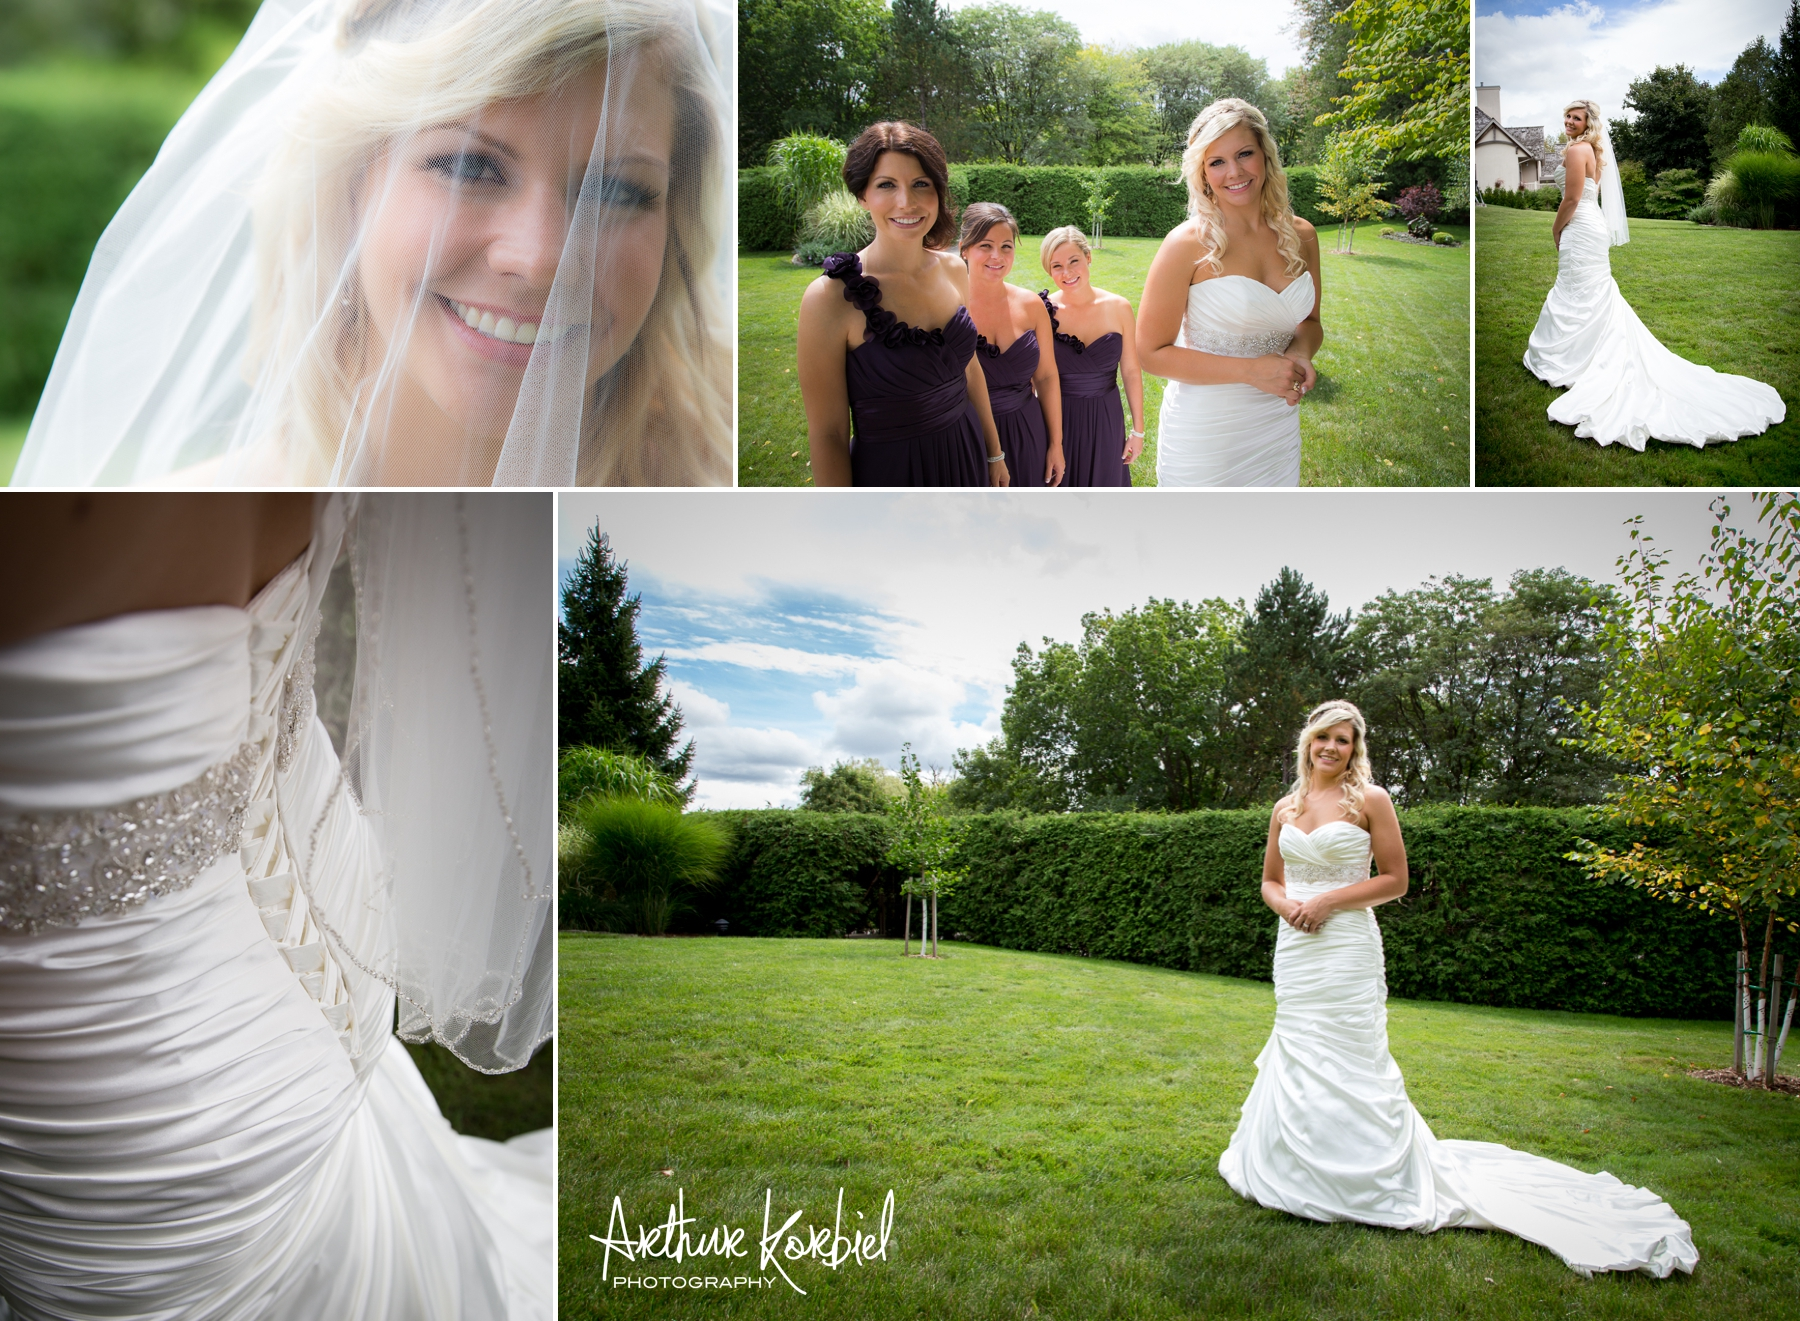 Arthur Korbiel Photography - London Wedding Photographer - Stone Willow Inn - St Marys & Stratford_016.jpg